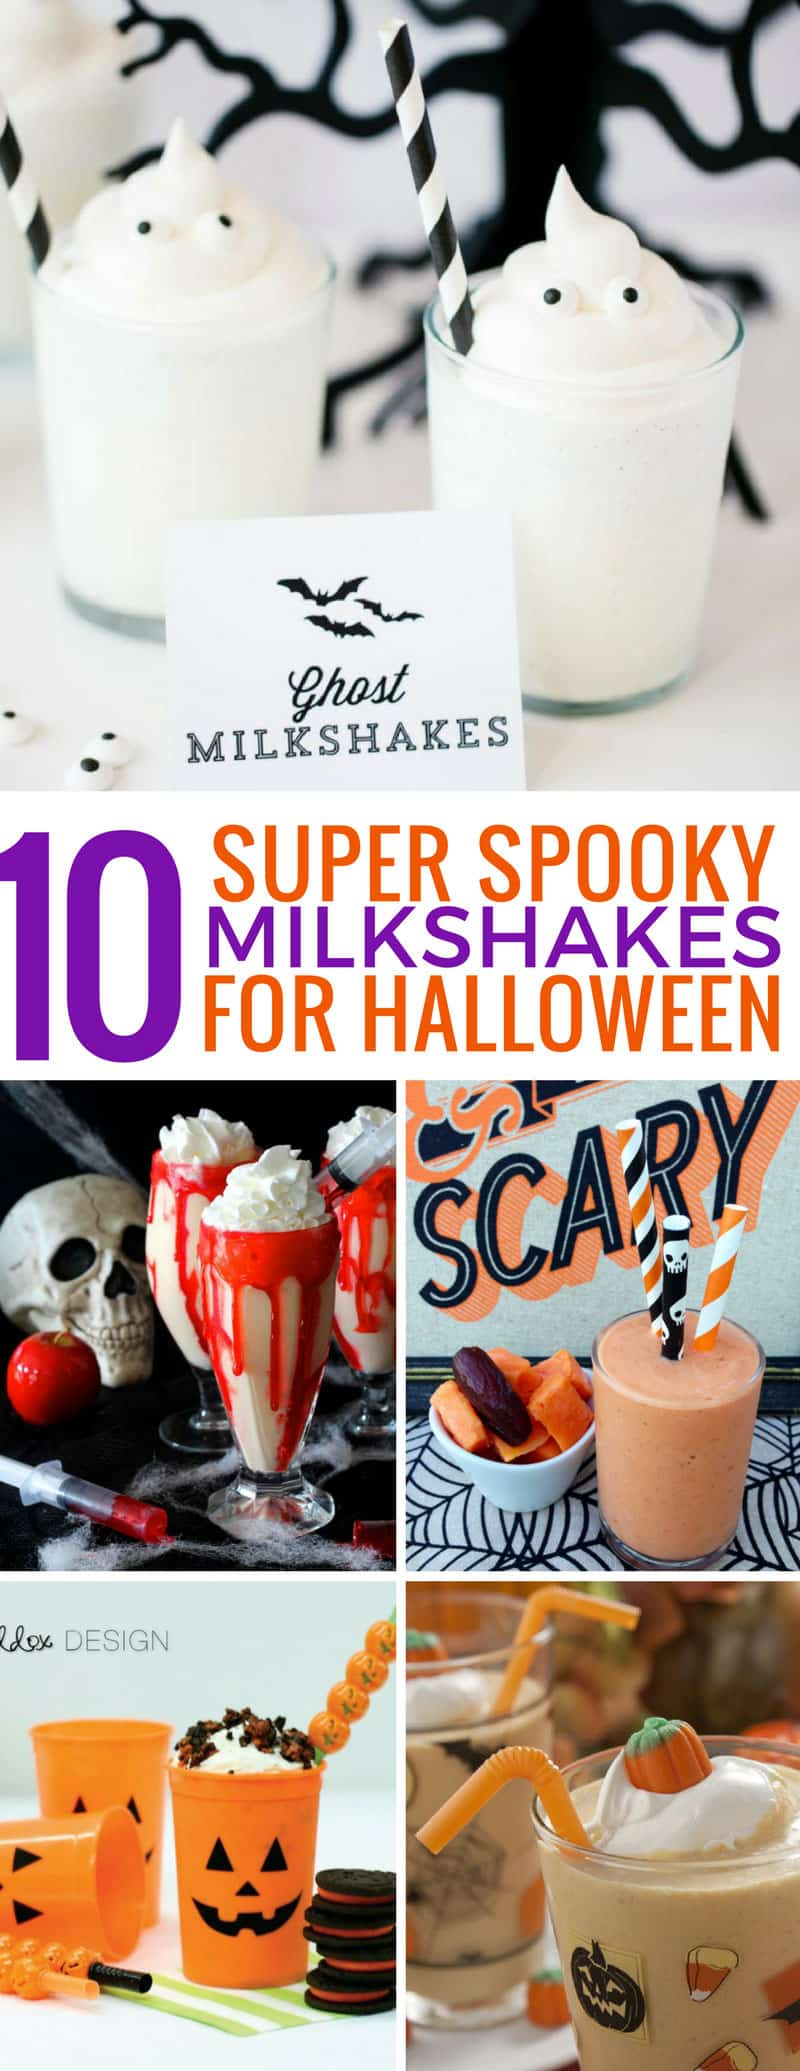 Loving these easy Halloween milkshakes for kids - they'll go down a storm at our party! Thanks for sharing!